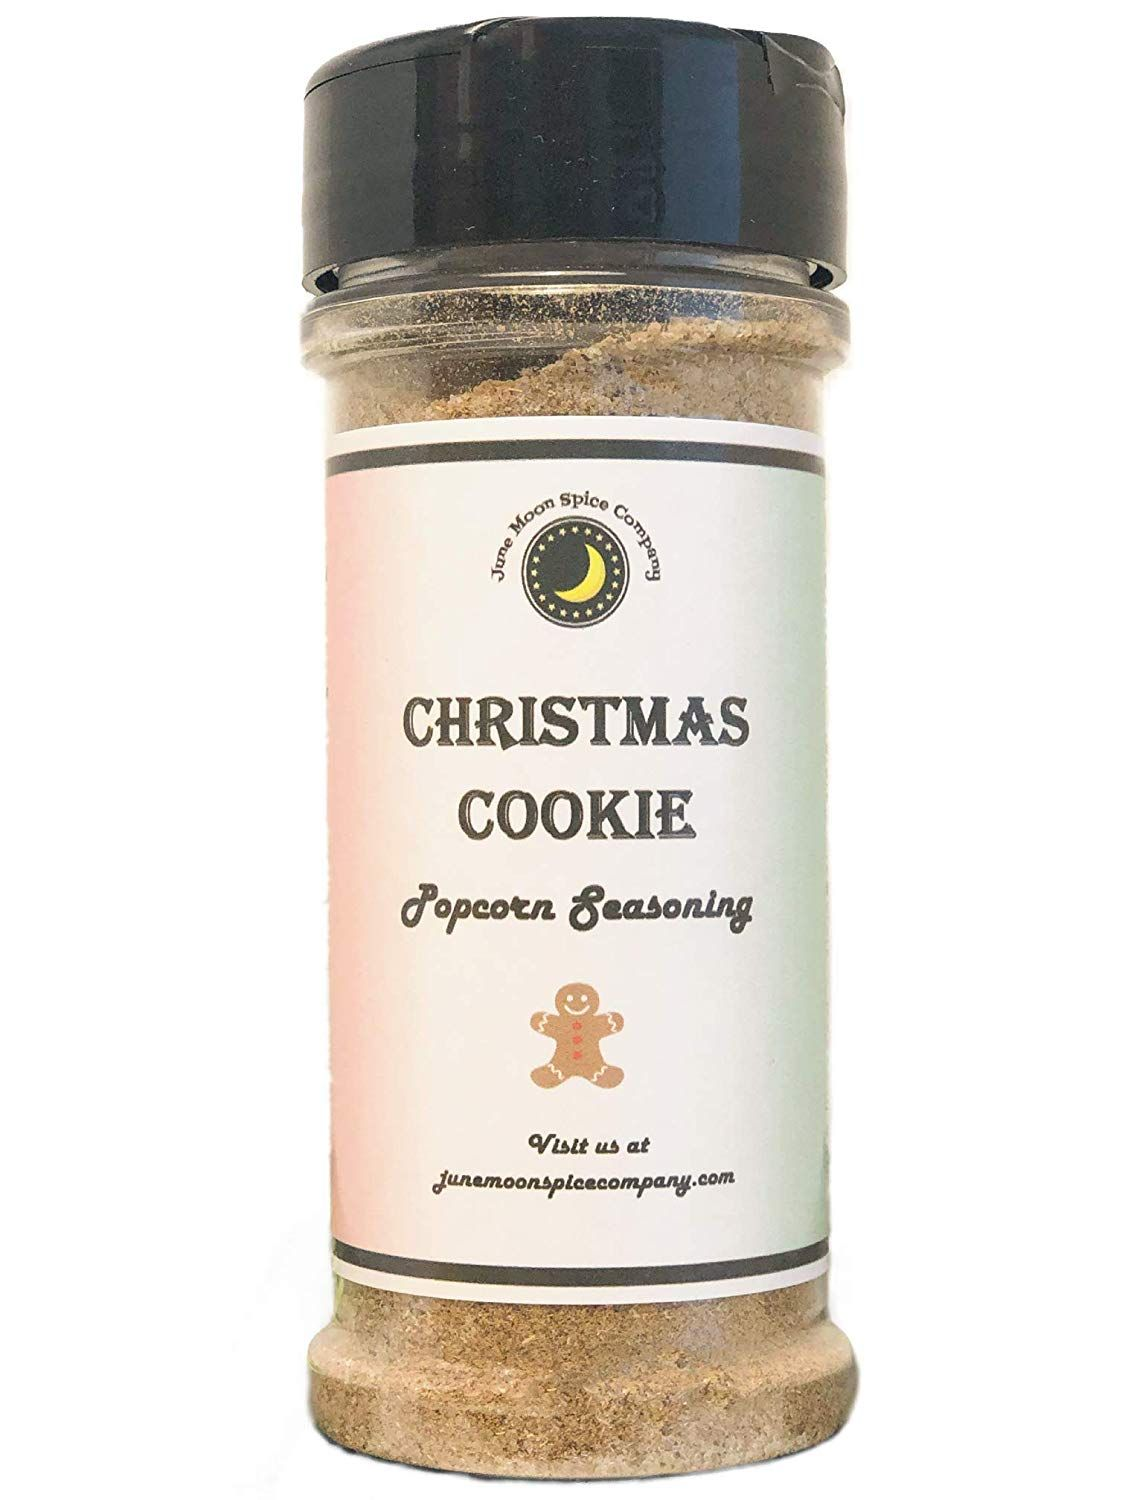 CHRISTMAS COOKIE Popcorn Seasoning CRAFTED in Small